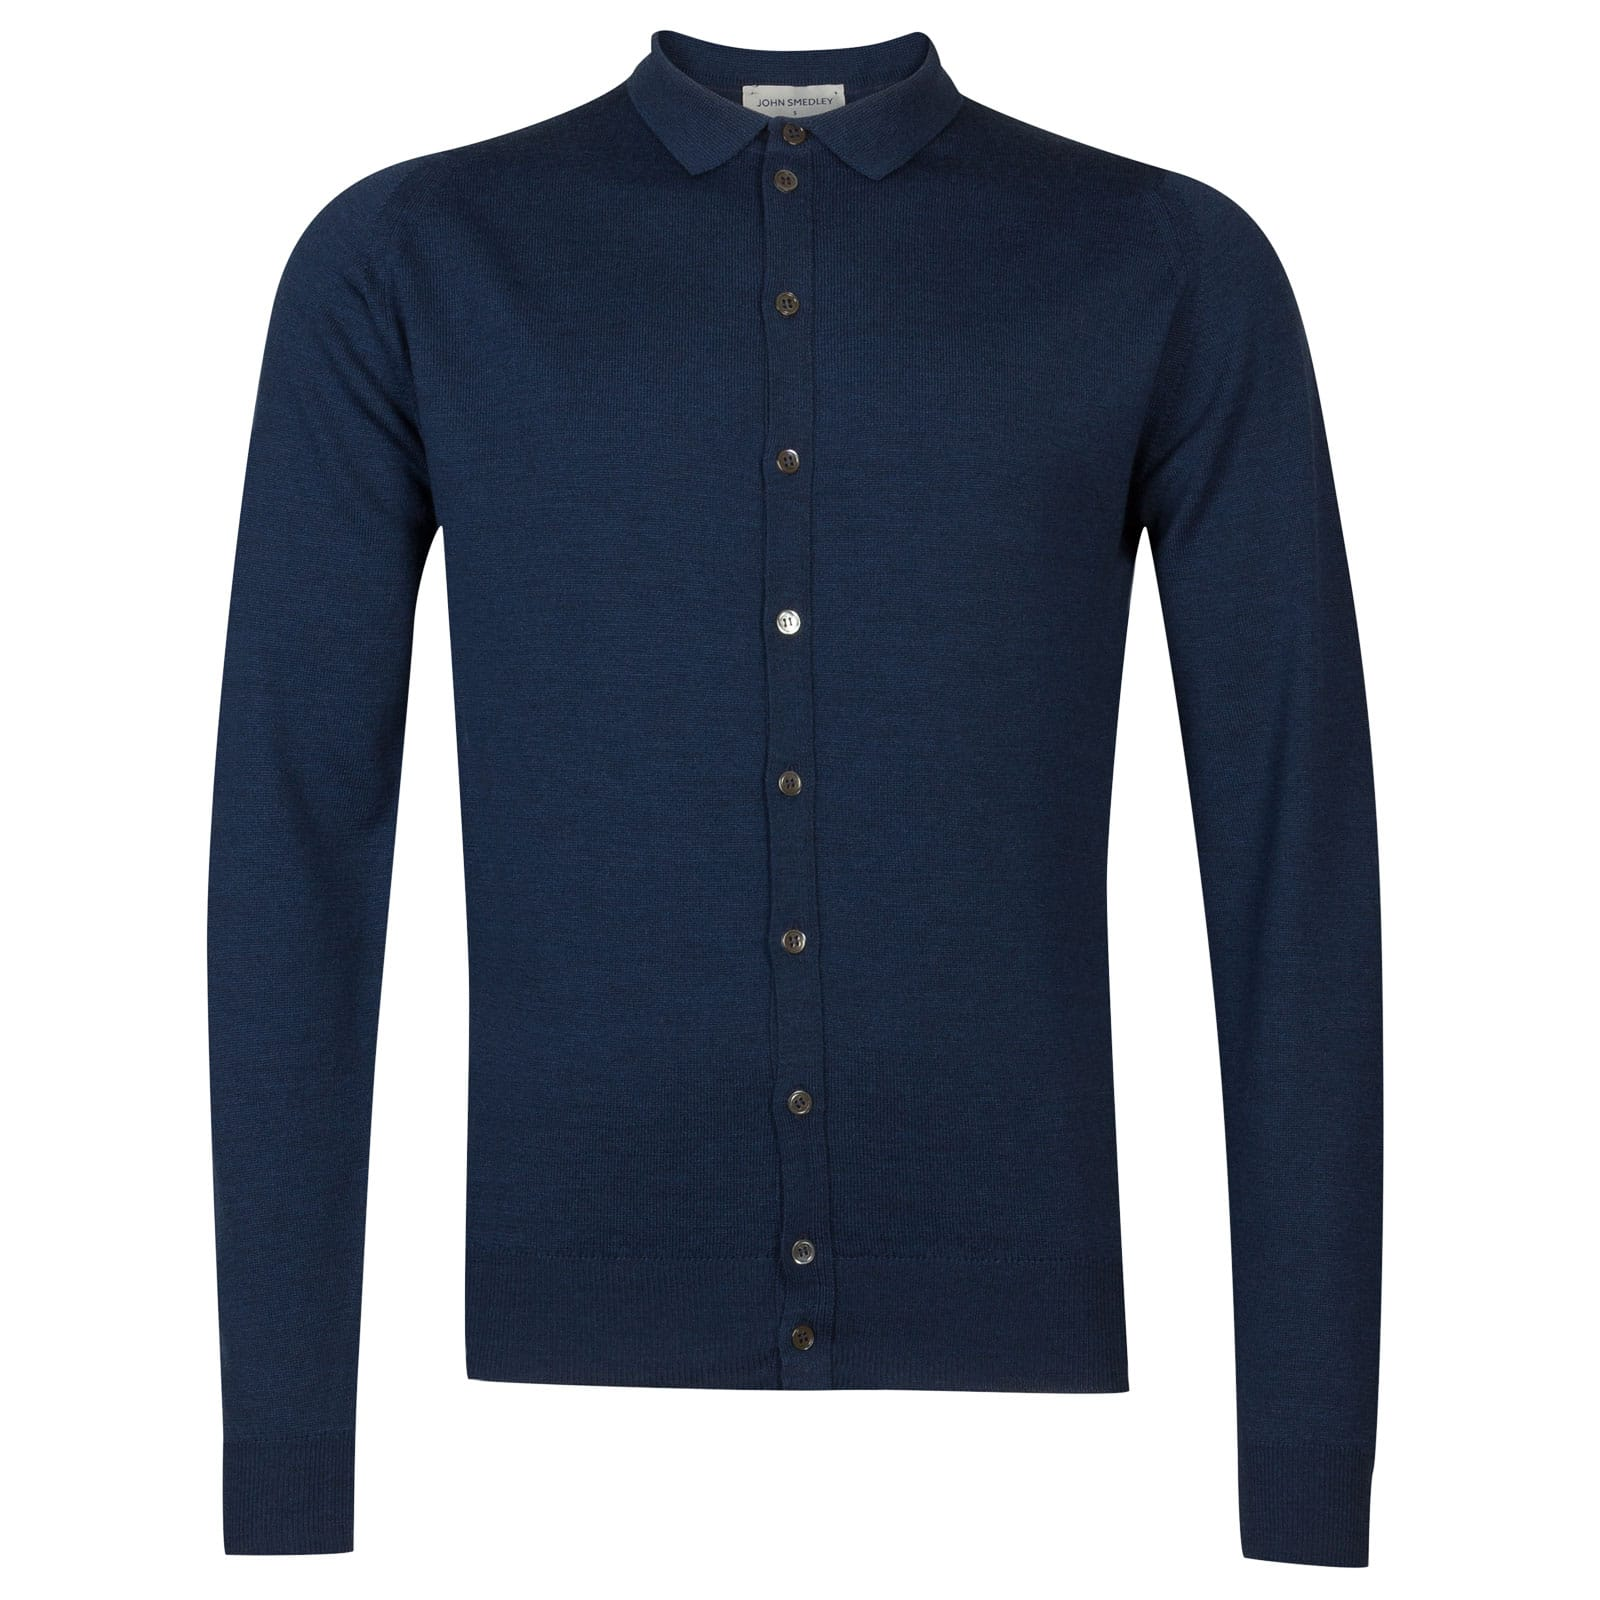 John Smedley parwish Merino Wool Shirt in Indigo-XL